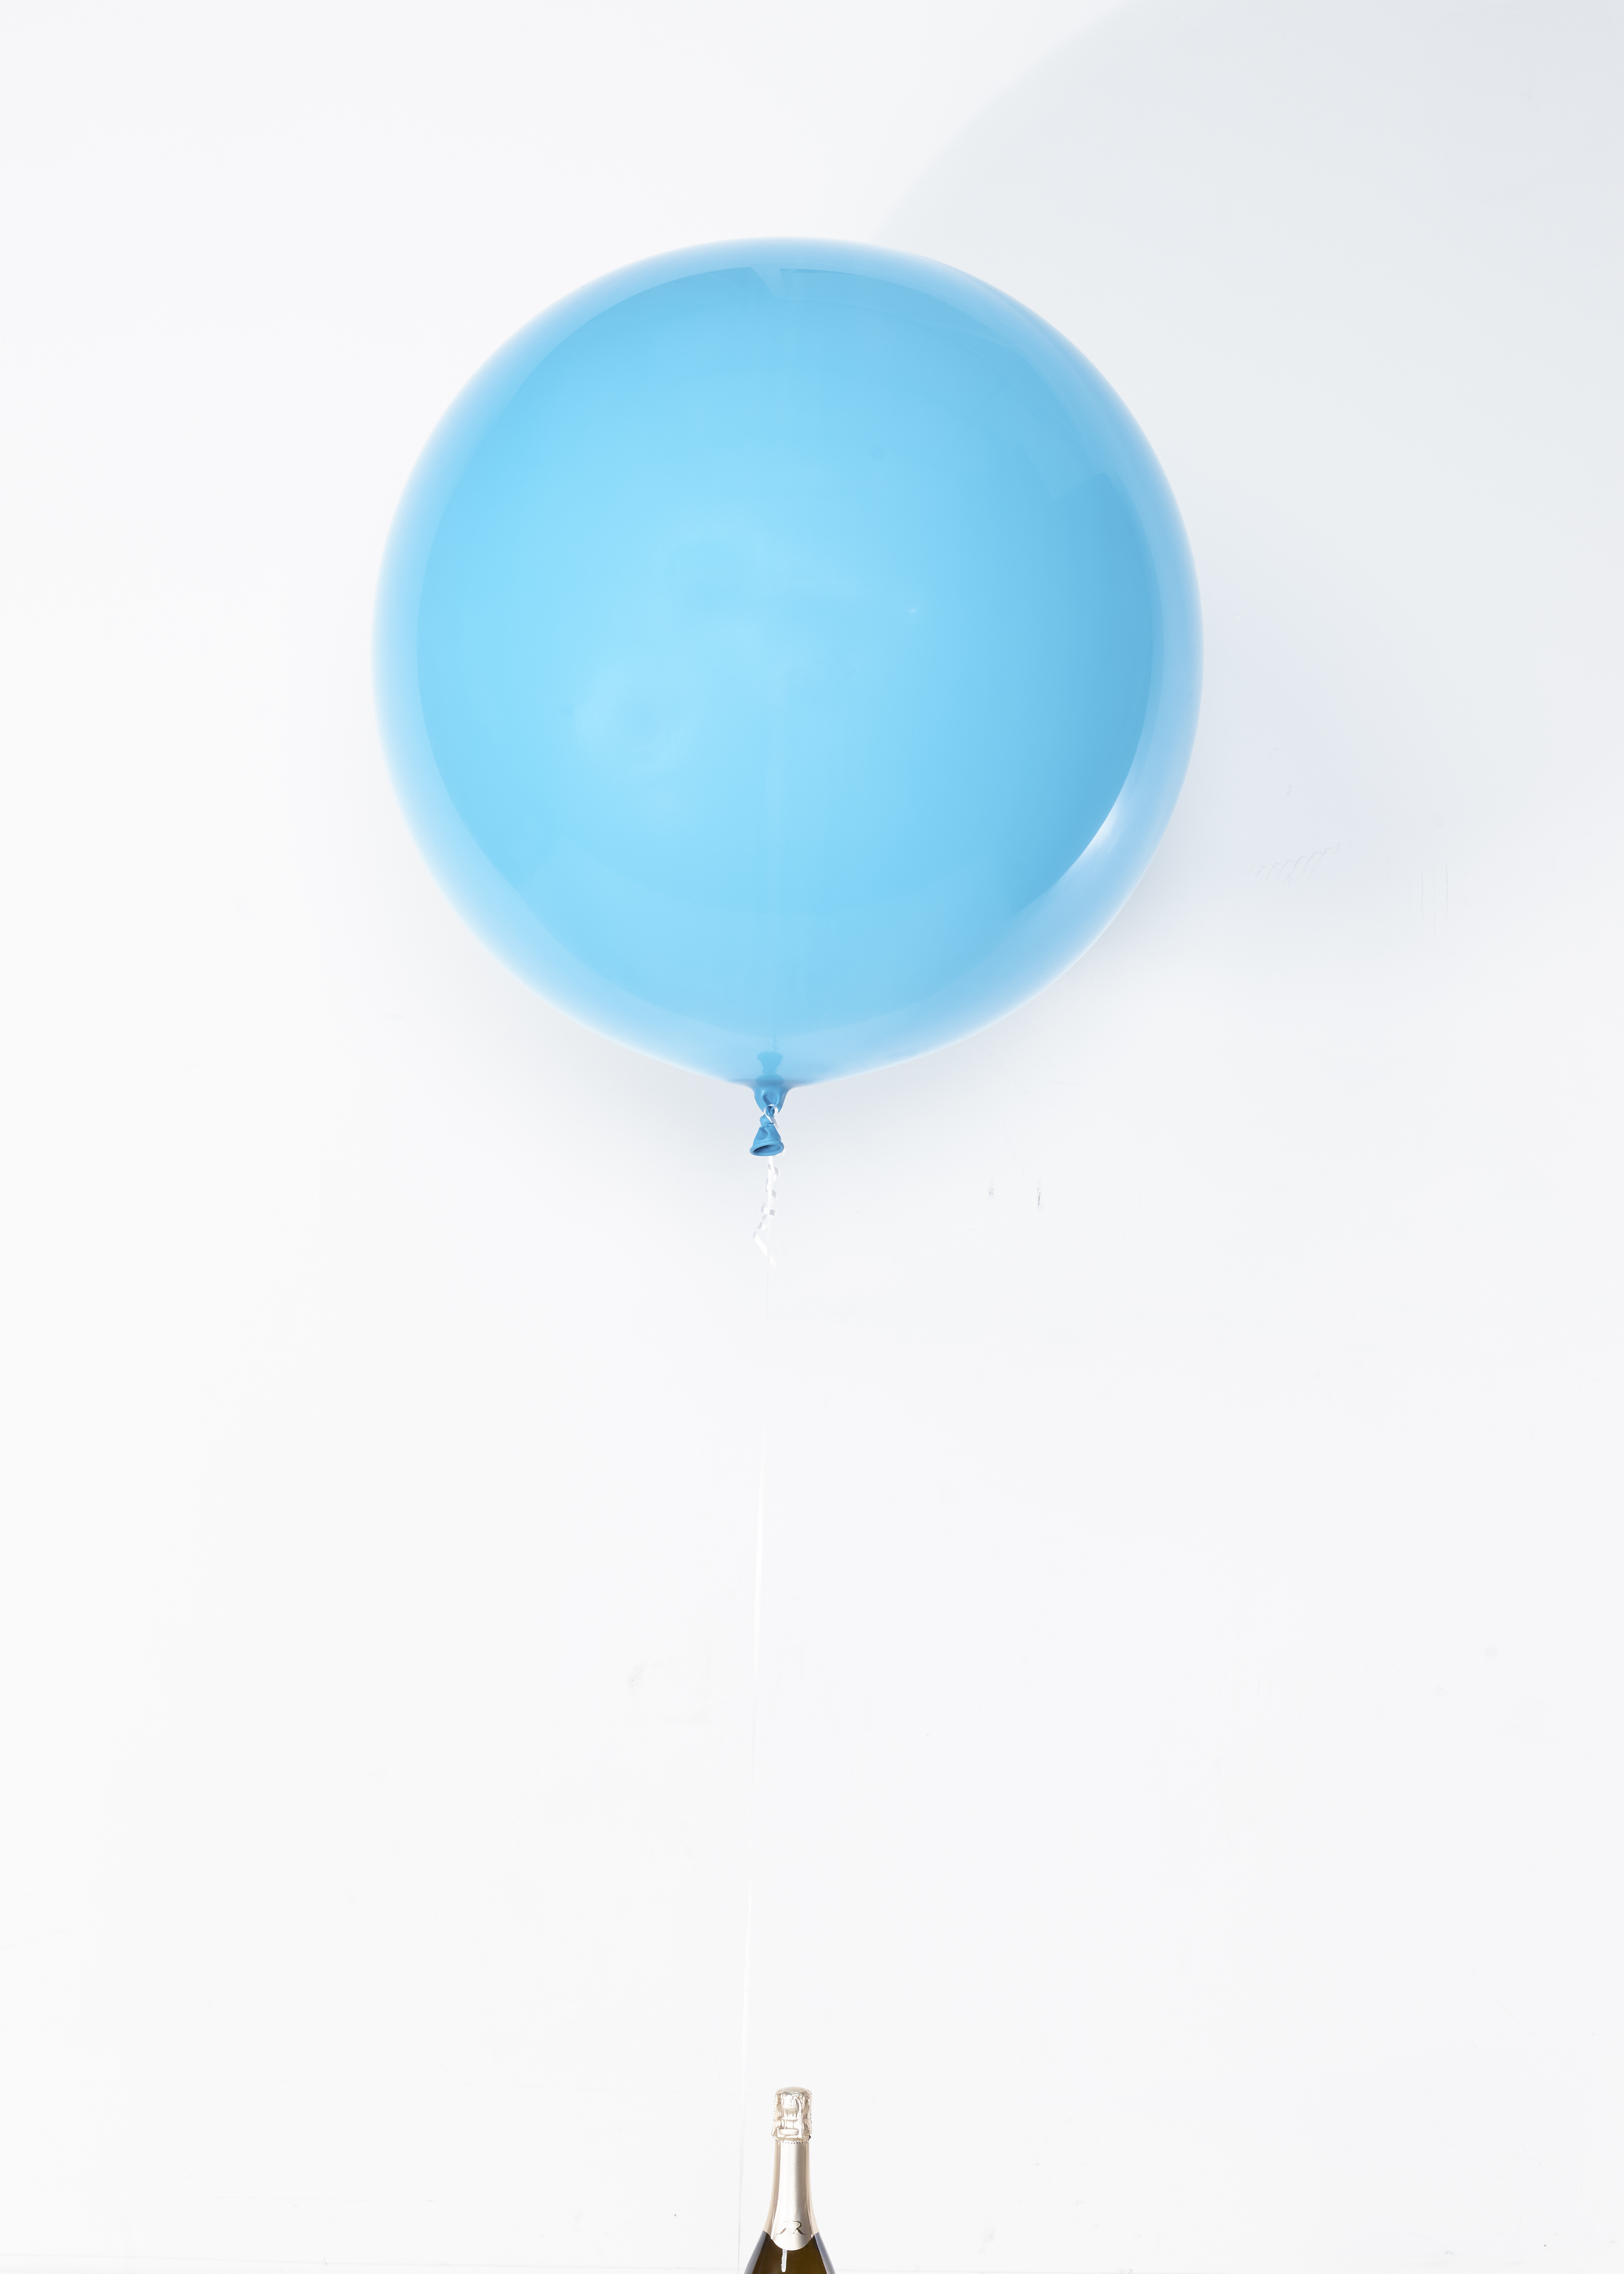 Balloon and Champaign.jpg